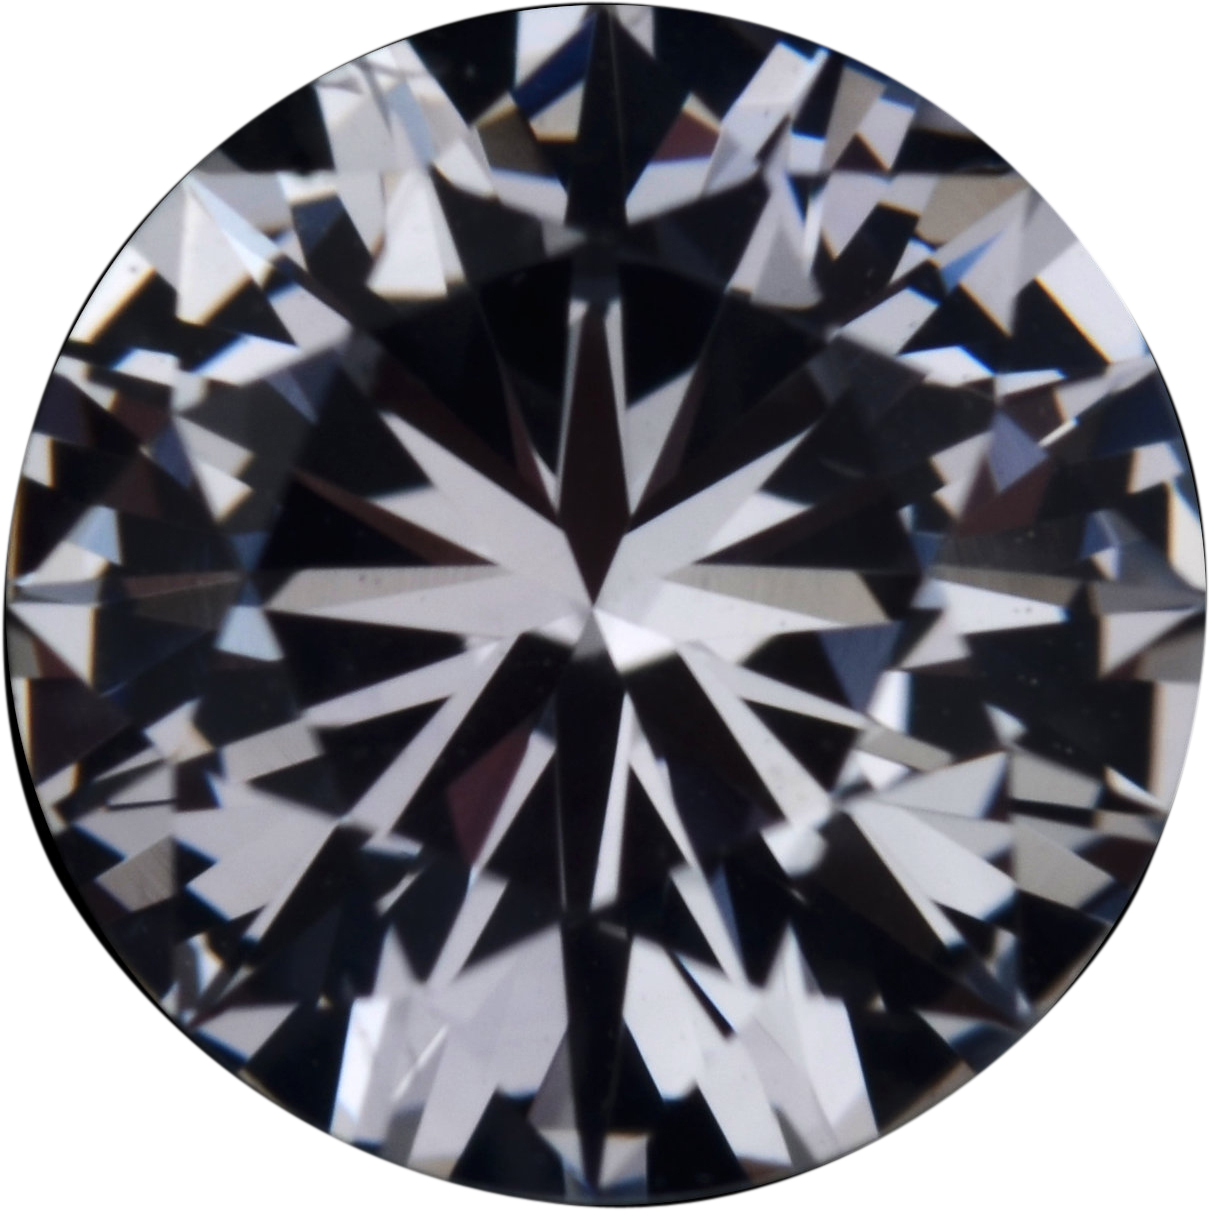 Nice Looking Sapphire Loose Gem in Round Cut, Near Colorless Hint of Blue, 6.74 mm, 1.39 Carats